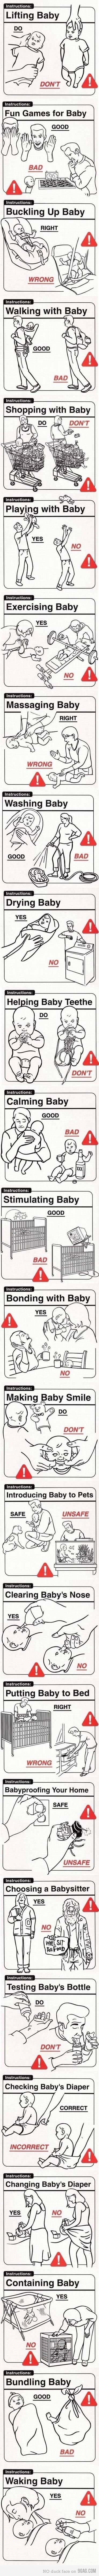 Baby Dos and Don'ts...I don't know why this made me laugh so hard but it did!